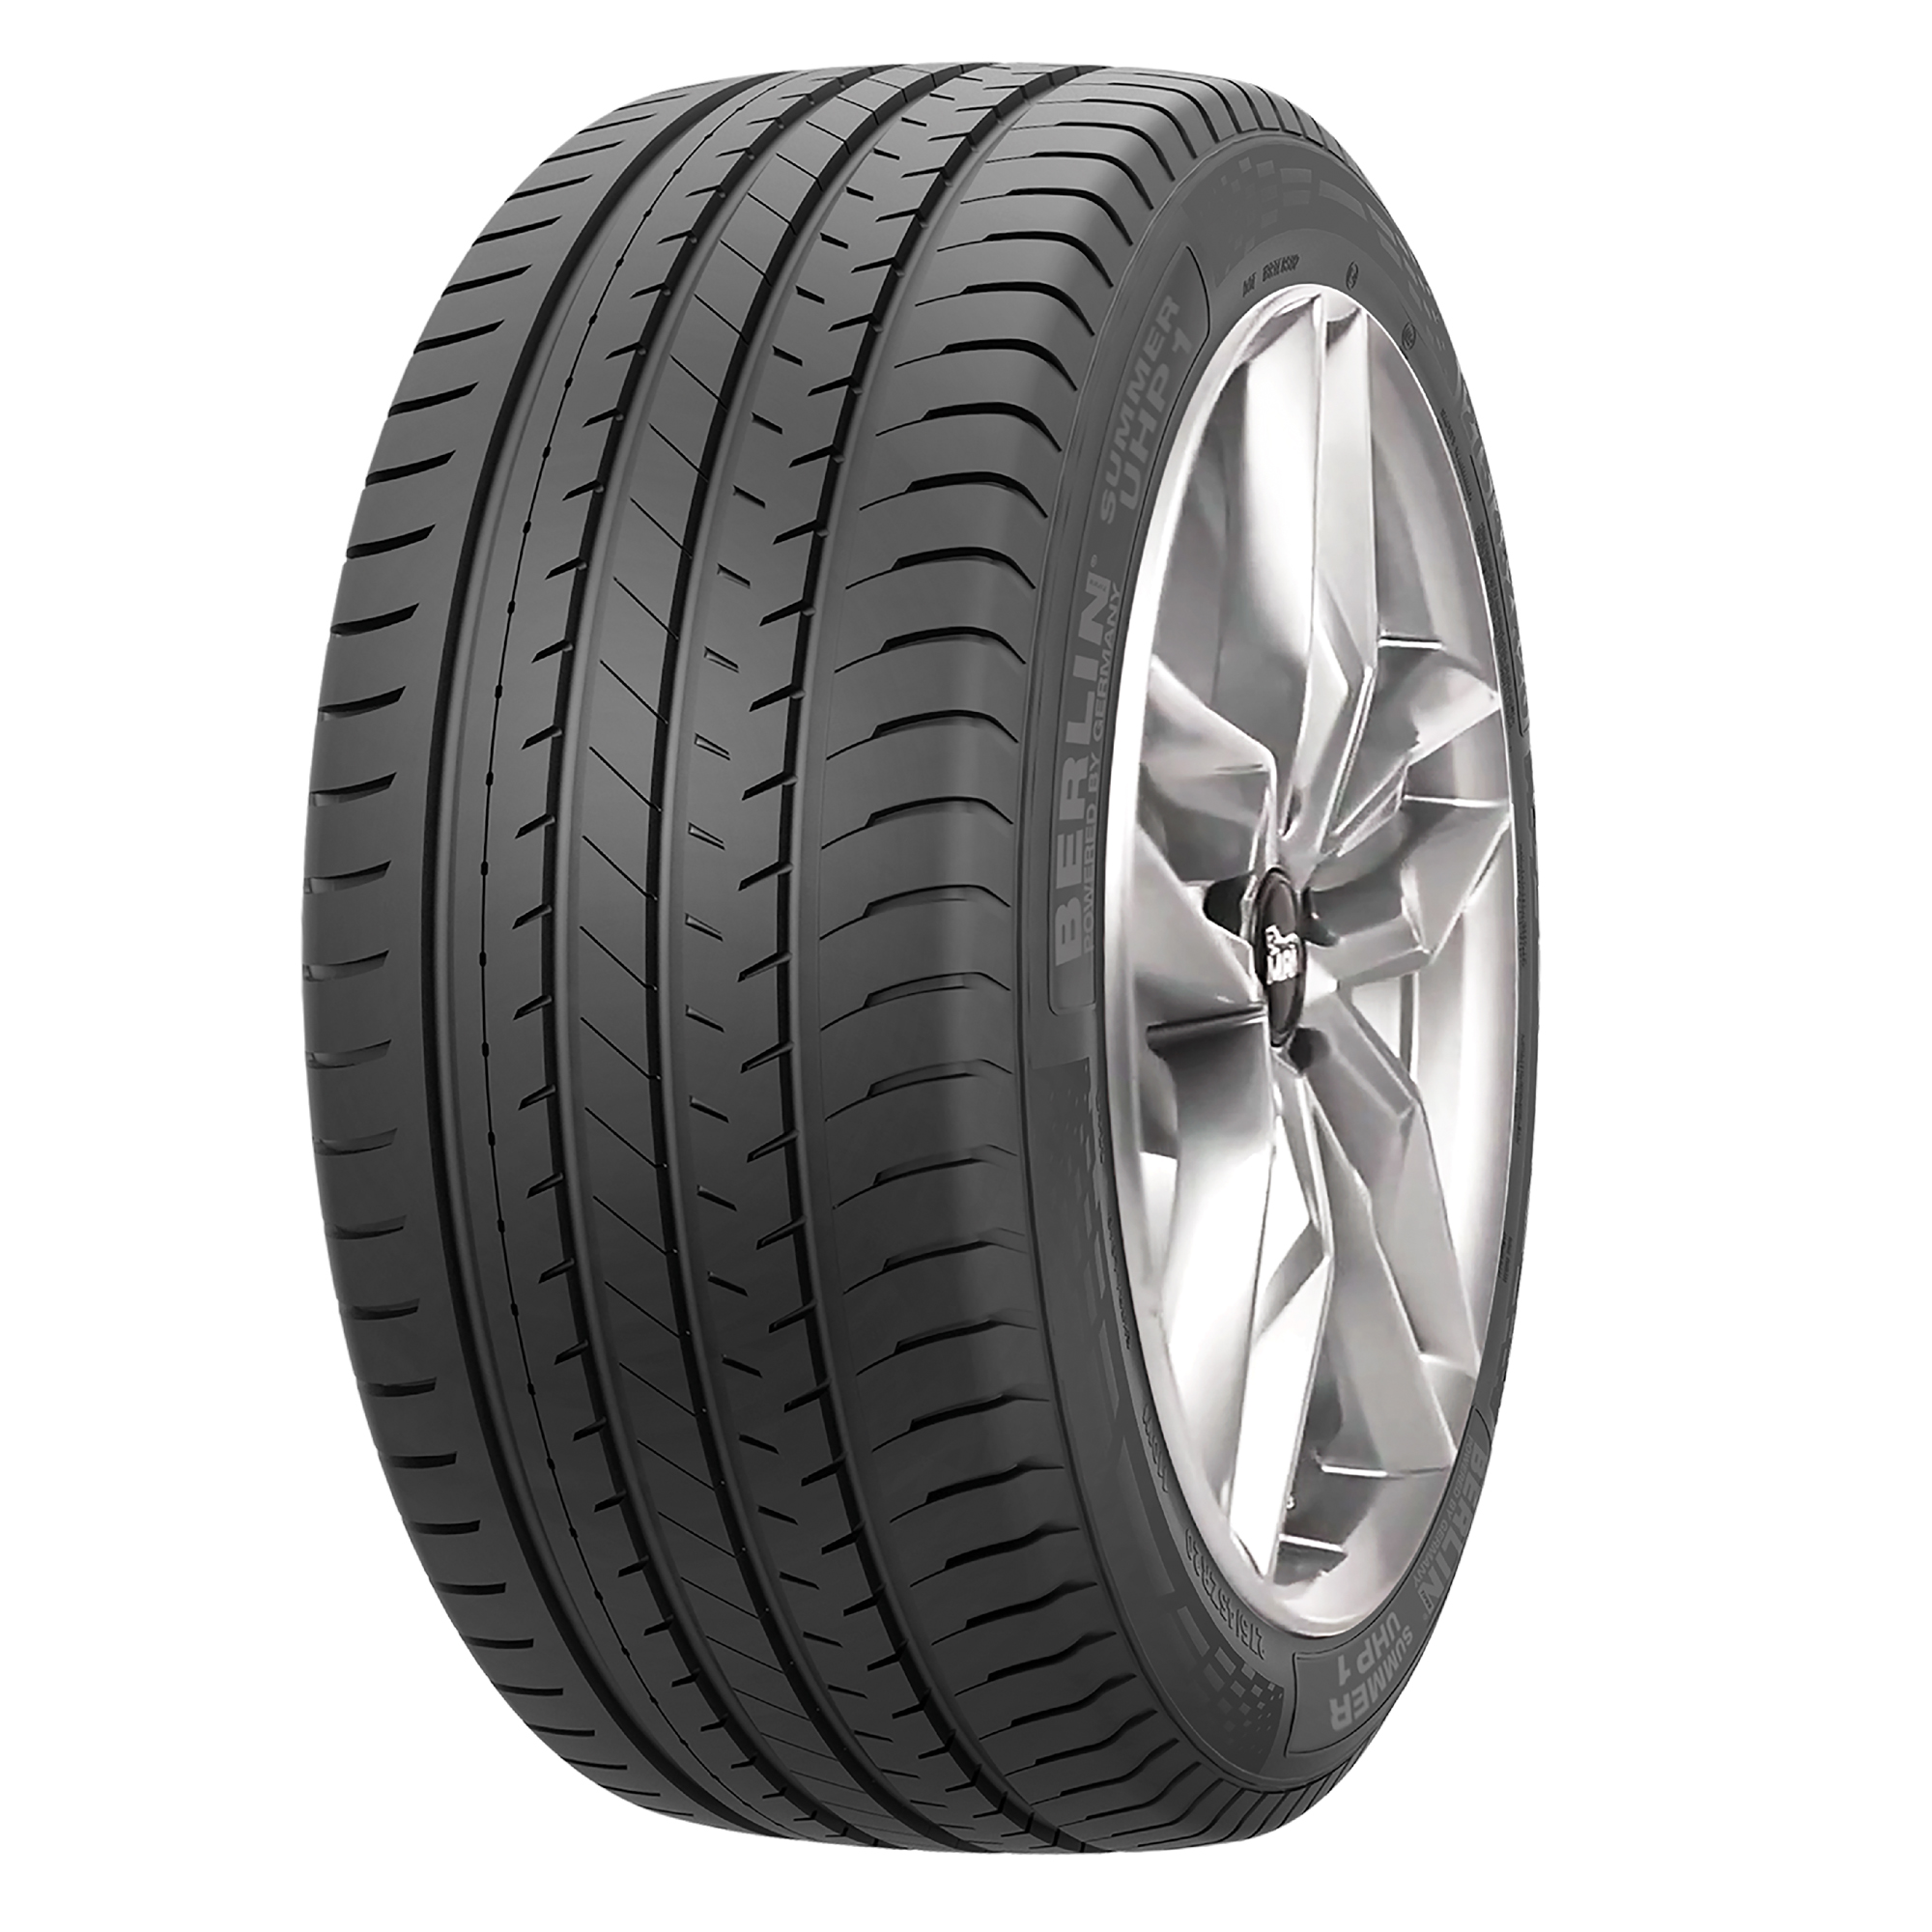 225/50R17 BERLIN TIRES SUMMER UHP 1 94V